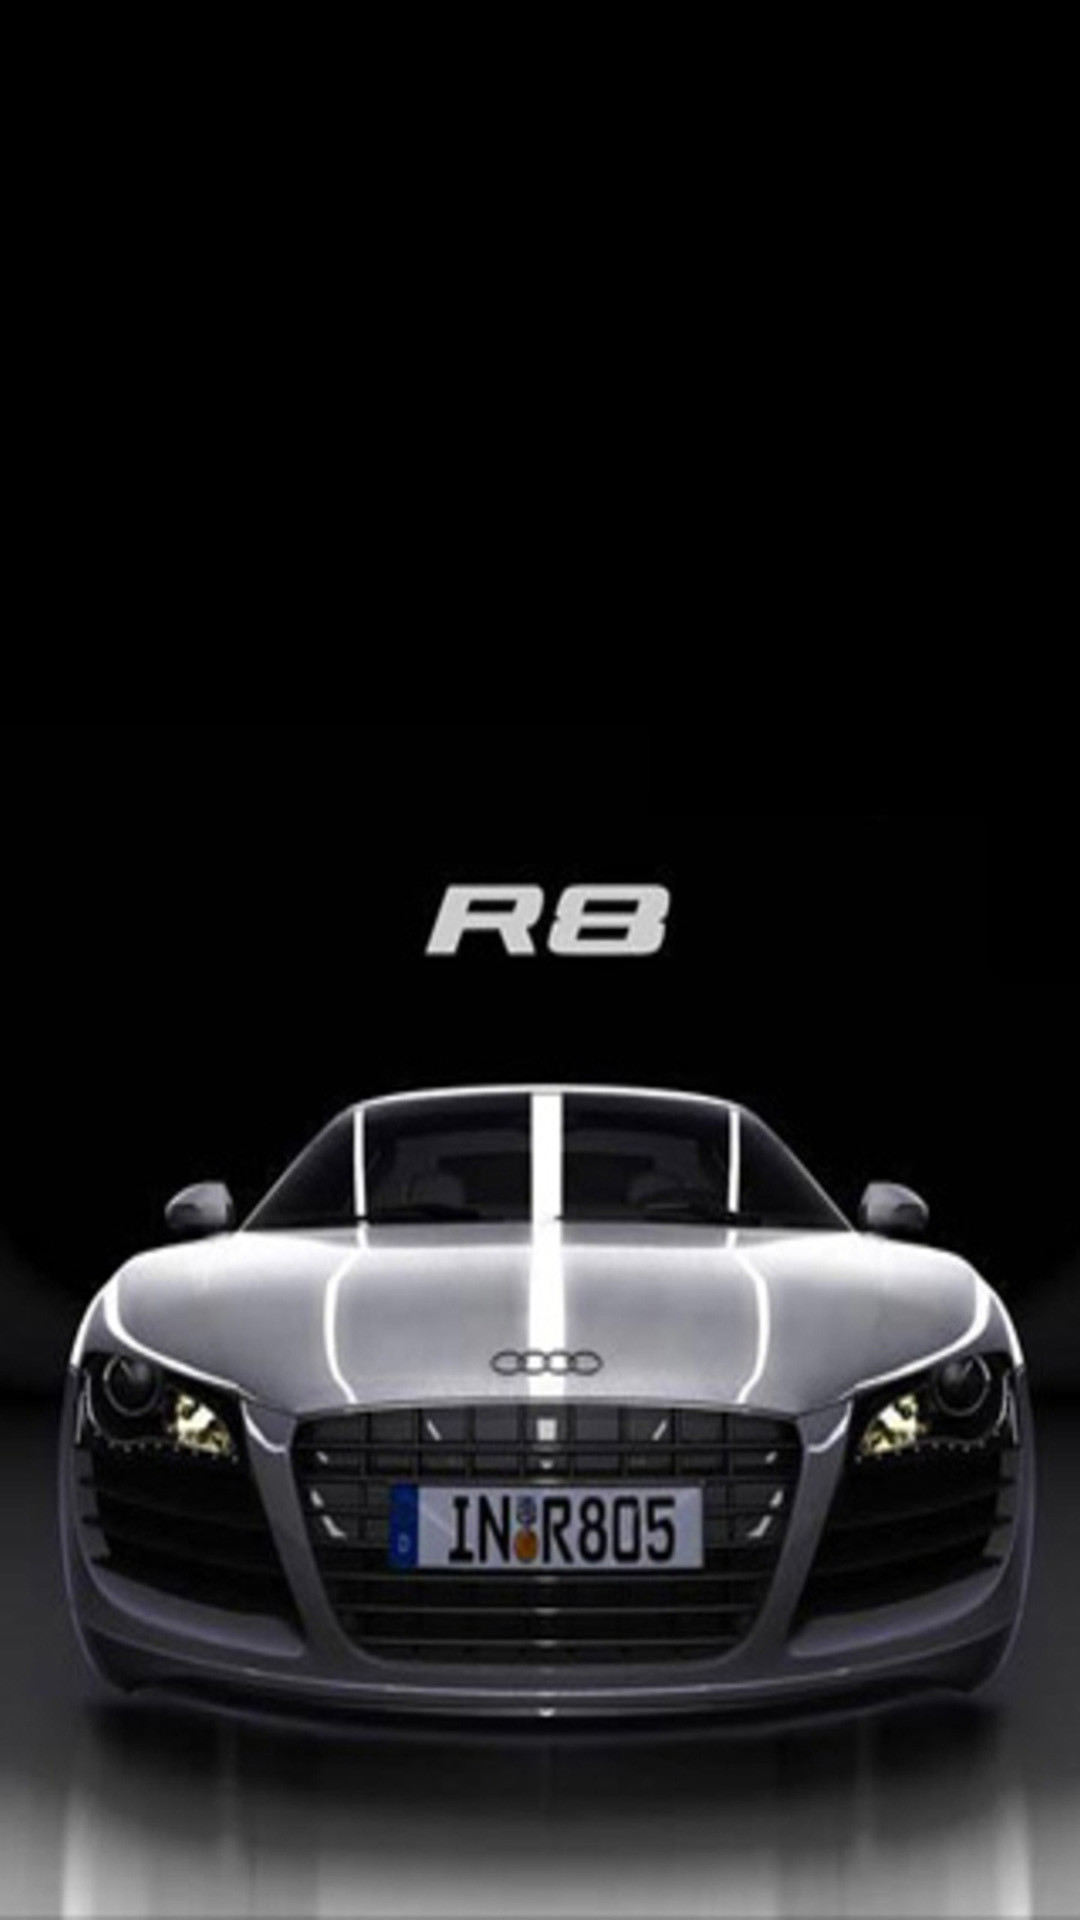 Audi r8 background 76 images - Car wallpapers for galaxy s5 ...